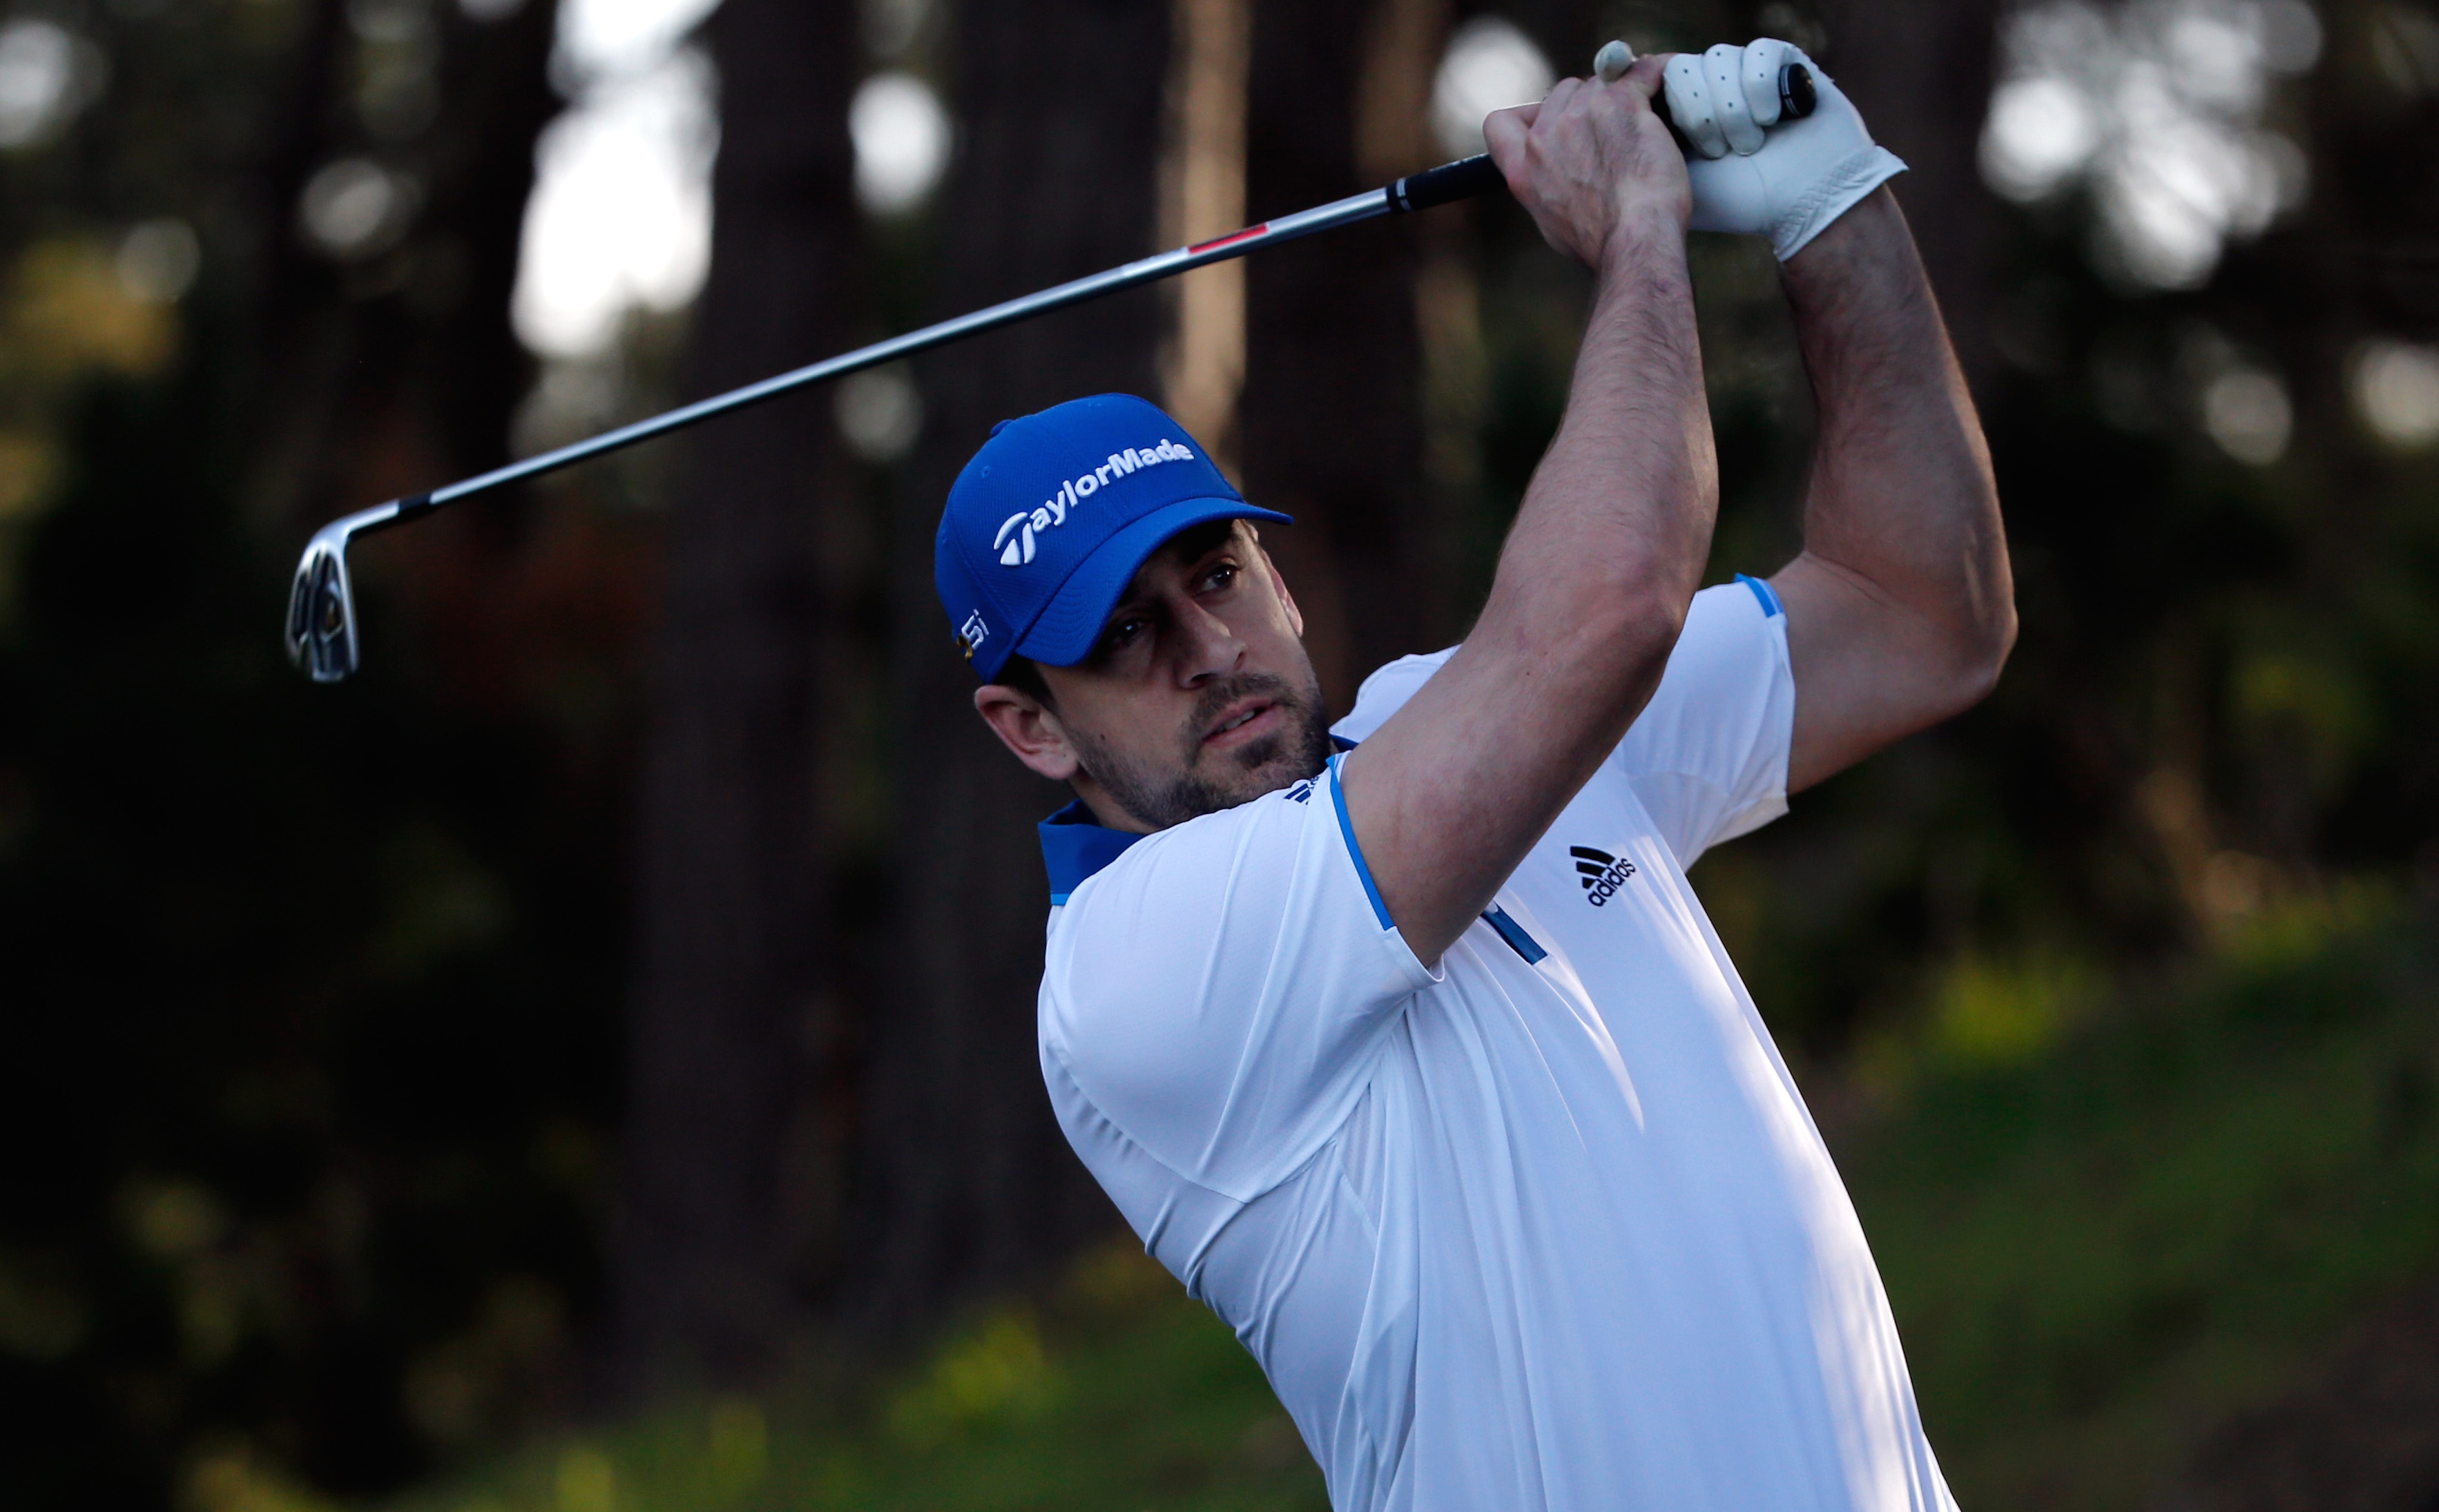 Aaron Rodgers decided he needed to cut back on golf this offseason to get in the best shape of his career.